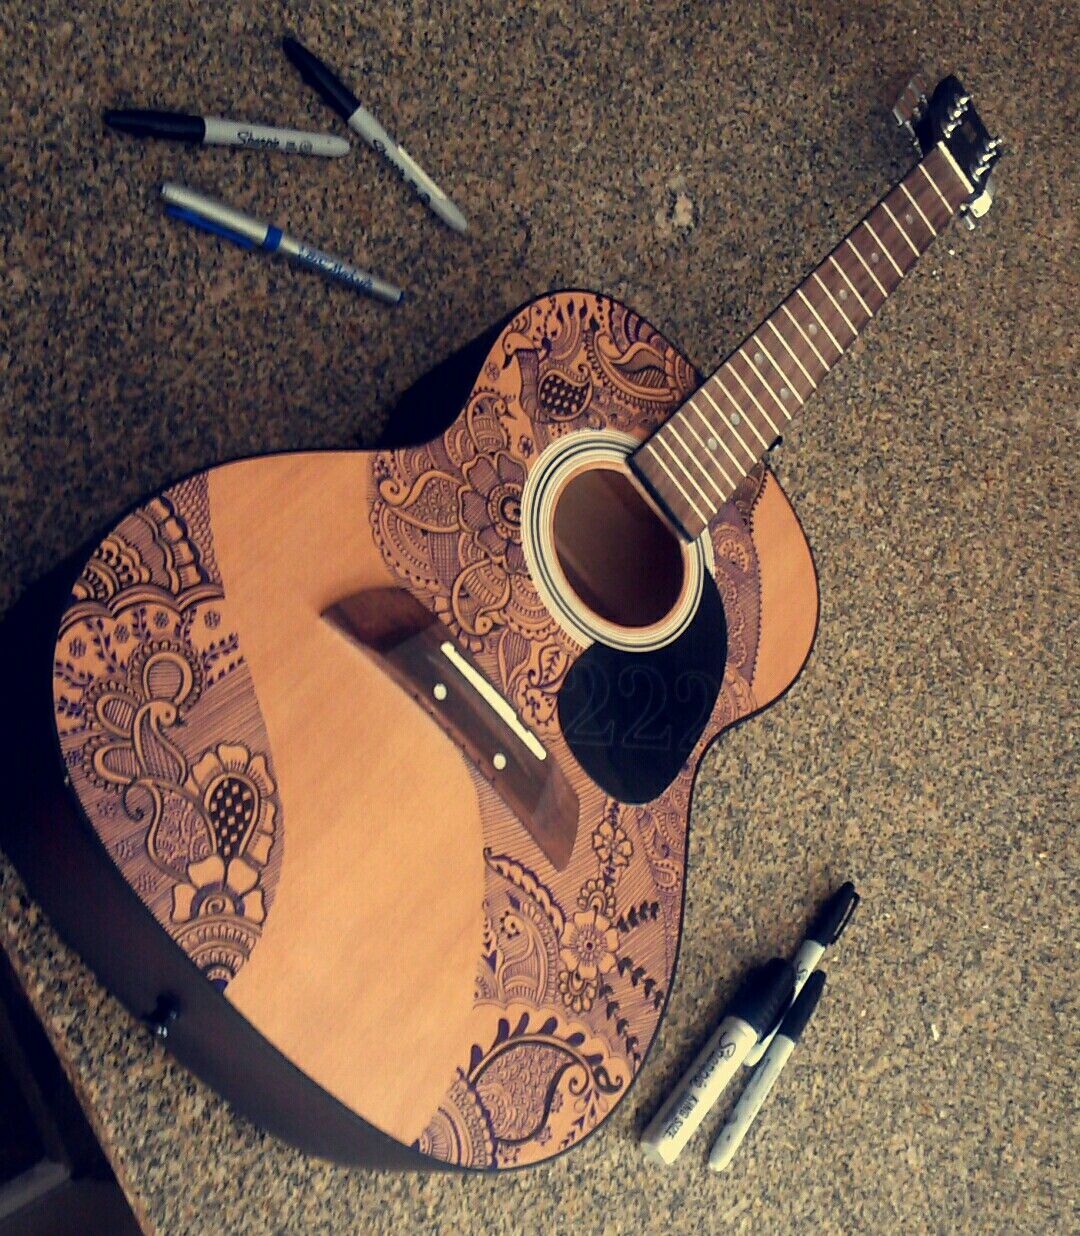 henna design on guitar i used a setting spray after the sharpie but it kind of messed up a. Black Bedroom Furniture Sets. Home Design Ideas